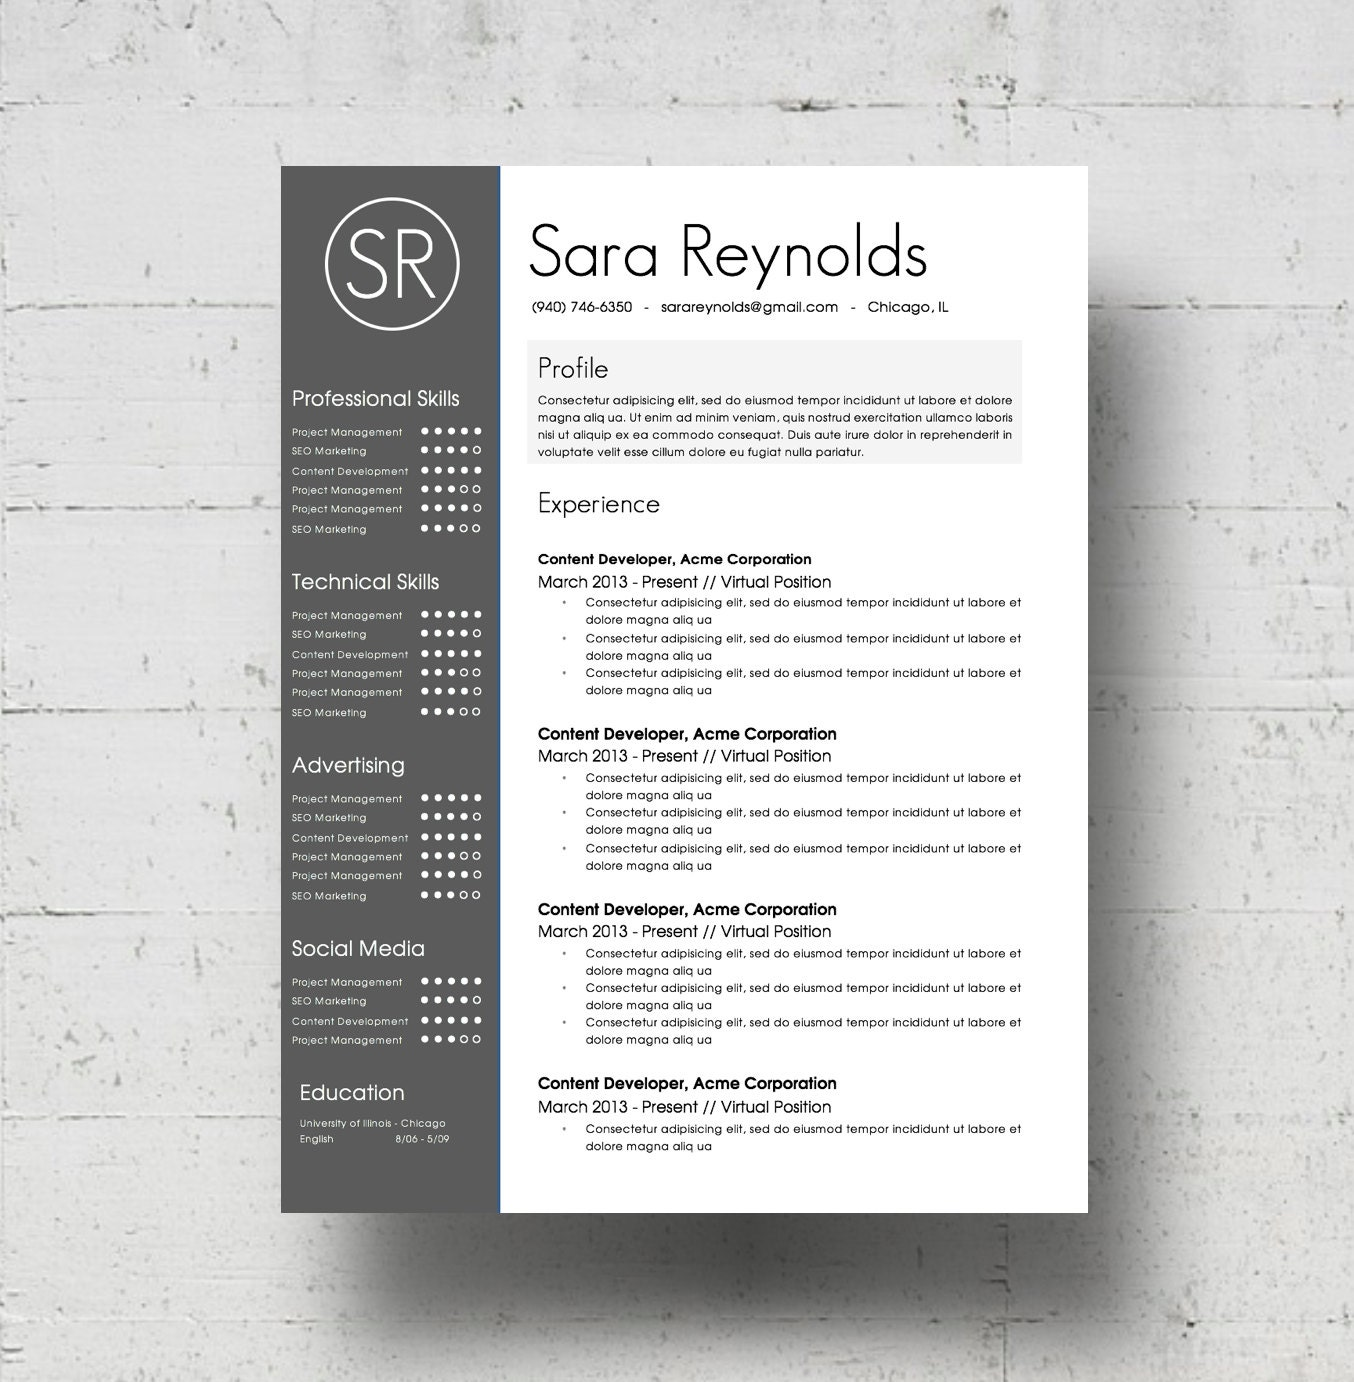 Resume Template Cover Letter Template The Sara By Phdpress: Resume Template & Cover Letter Template The Sara Reynolds